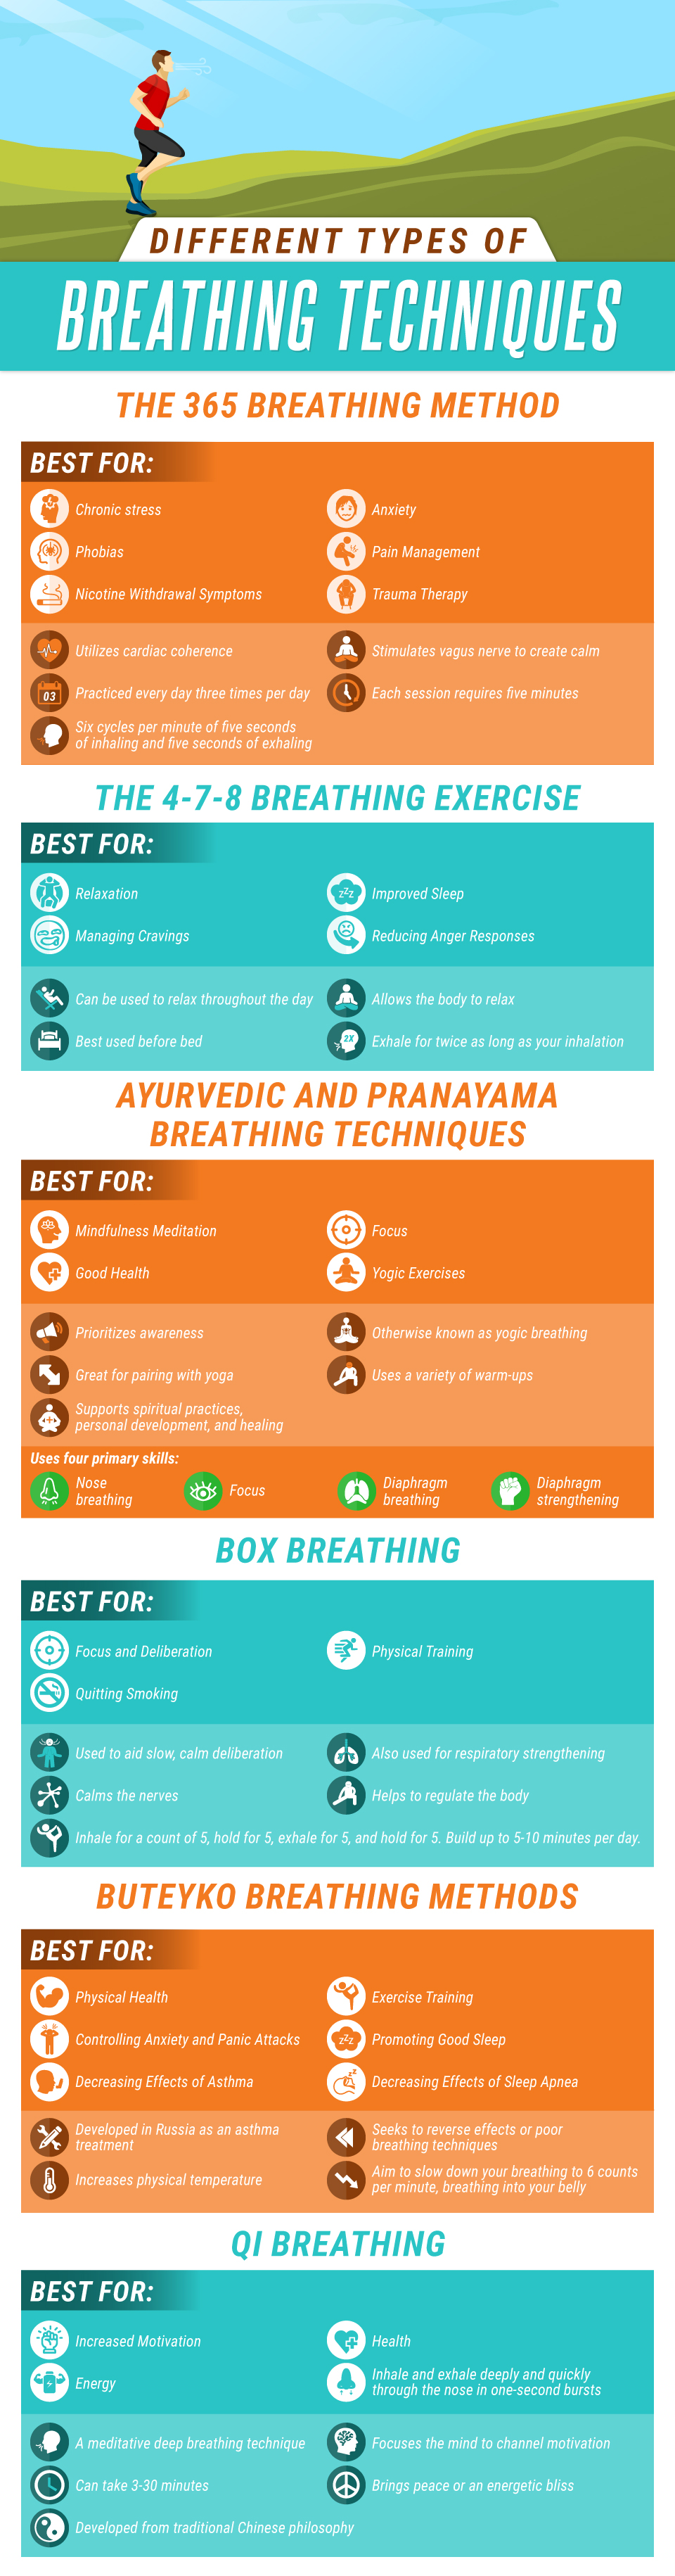 Different Types of Breathing Techniques